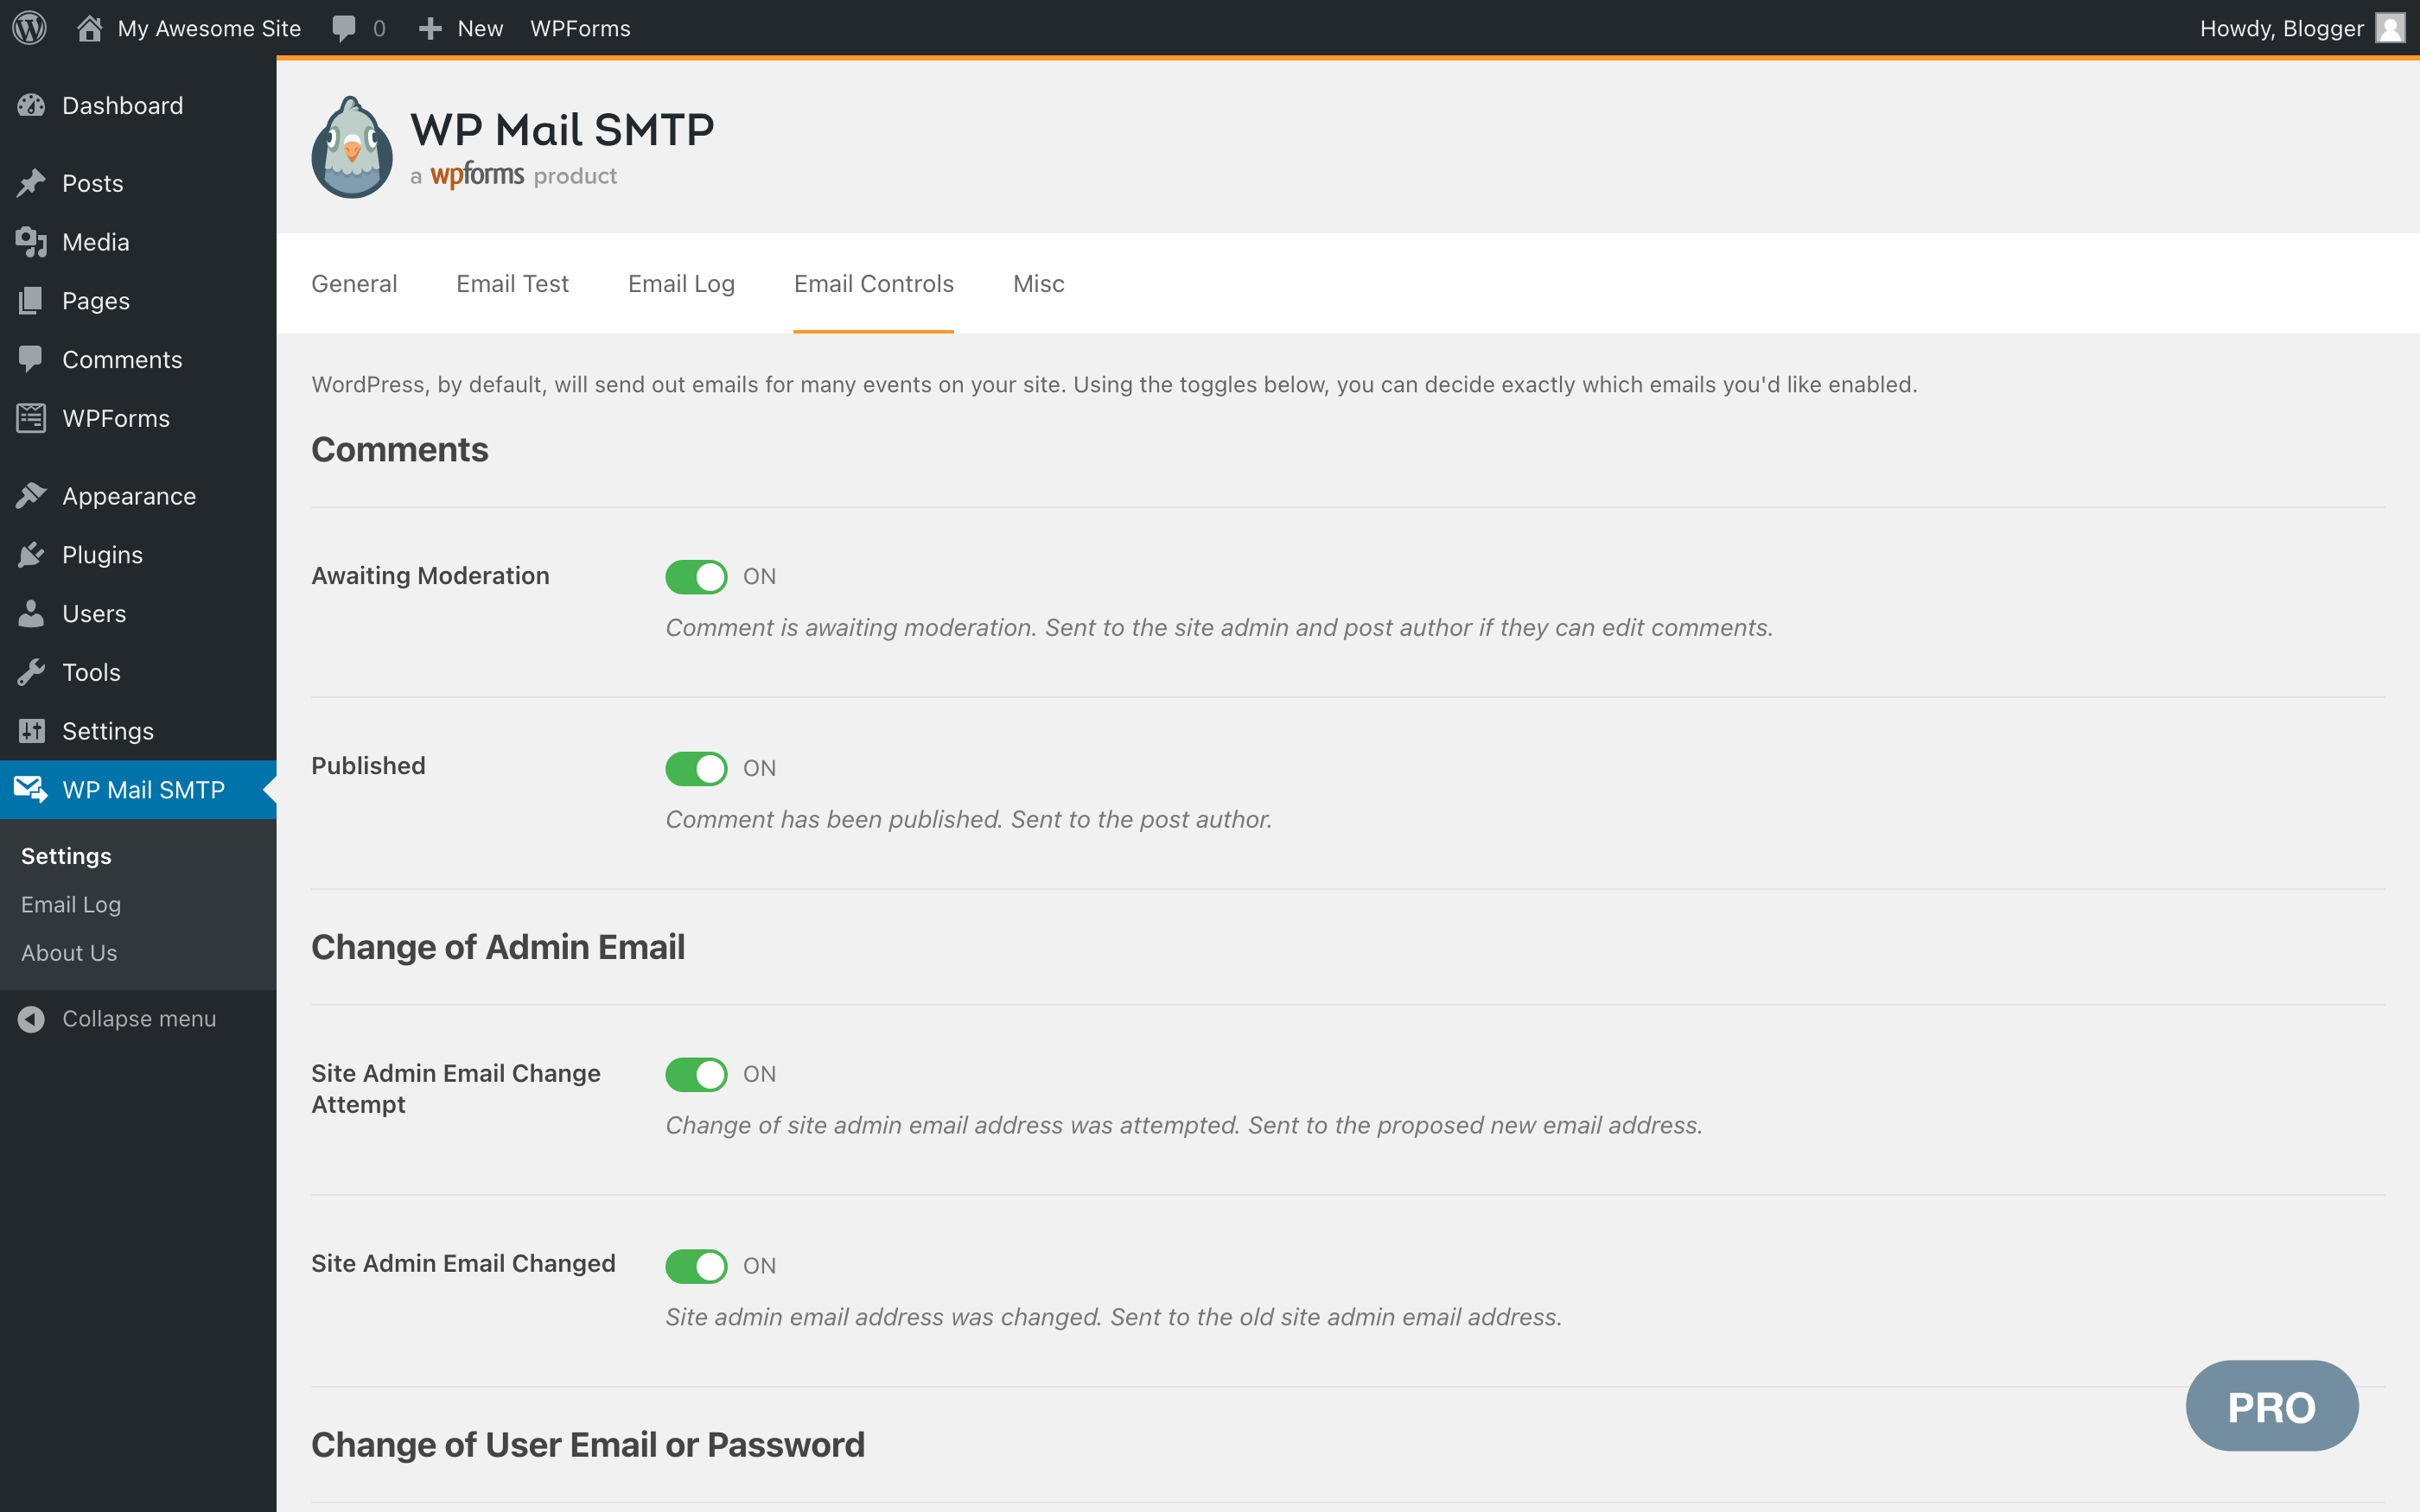 Email Controls settings page (Pro)